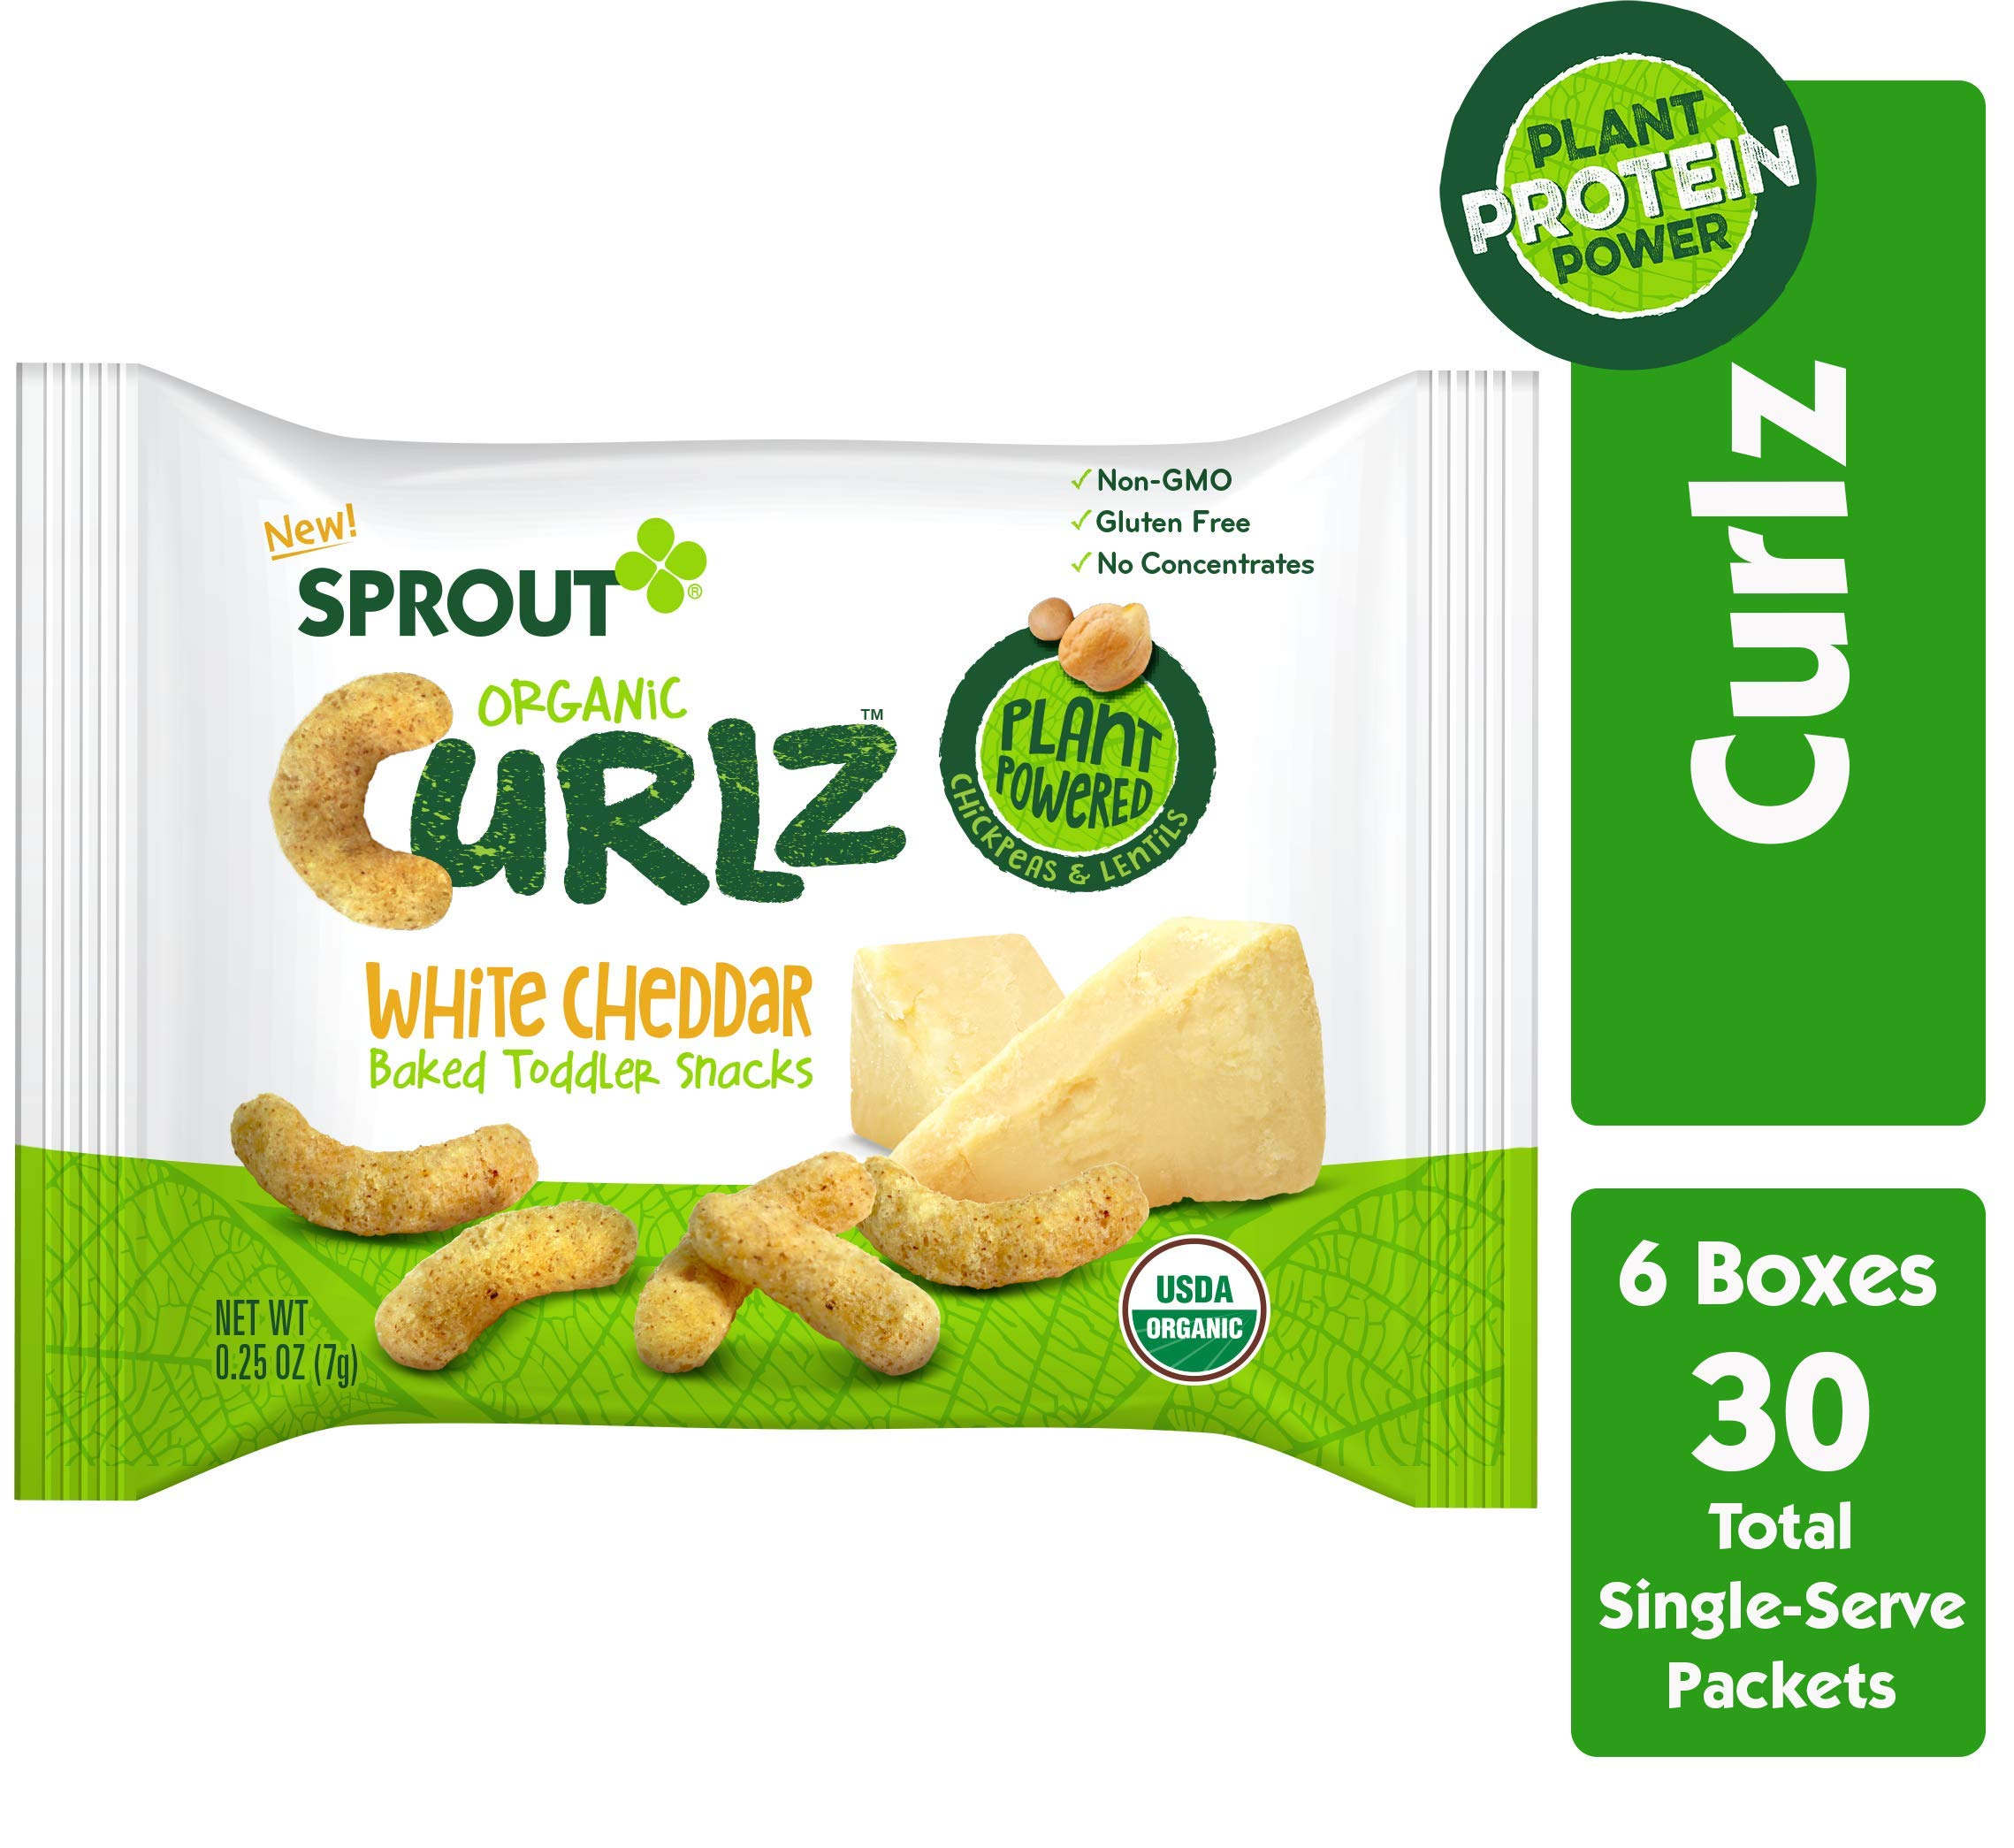 Sprout Organic Curlz Toddler Snacks, White Cheddar, 0.25 Ounce (30 Count) by Sprout